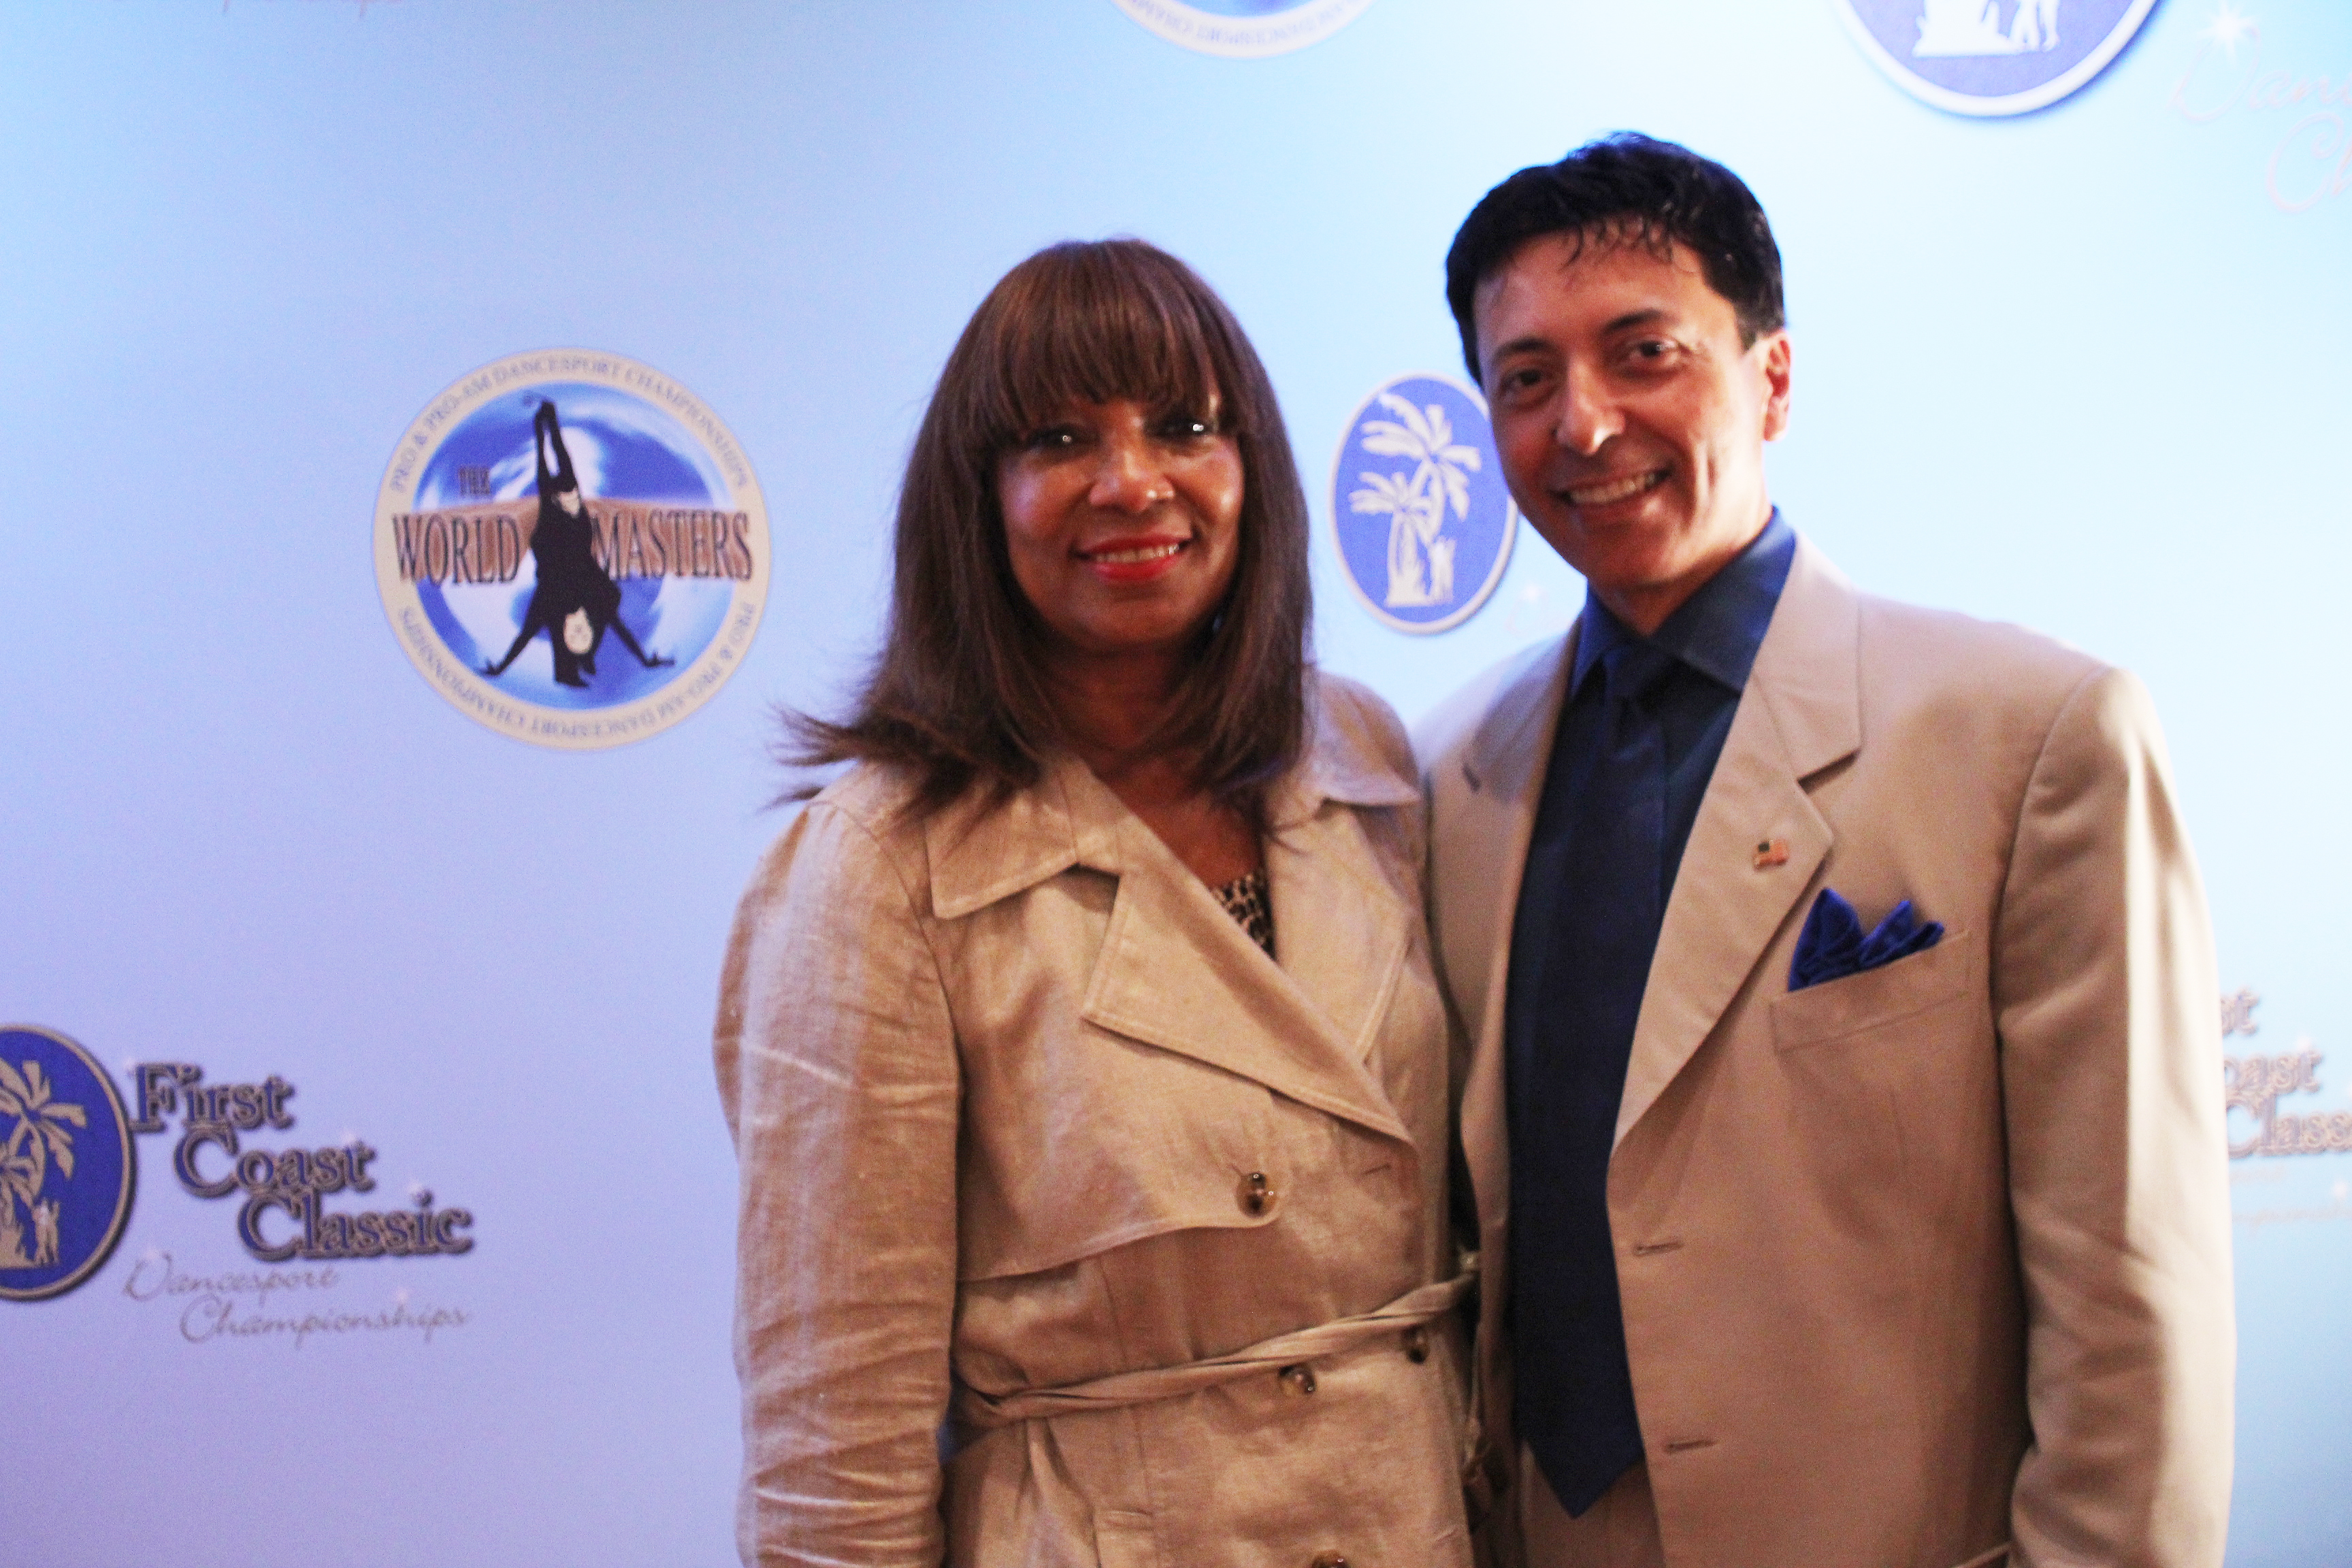 Beryle I. Baker with Sarwat Kaluby, host of First Coast Classic and Ohio Star Ball; Photo by Gift Star Productions